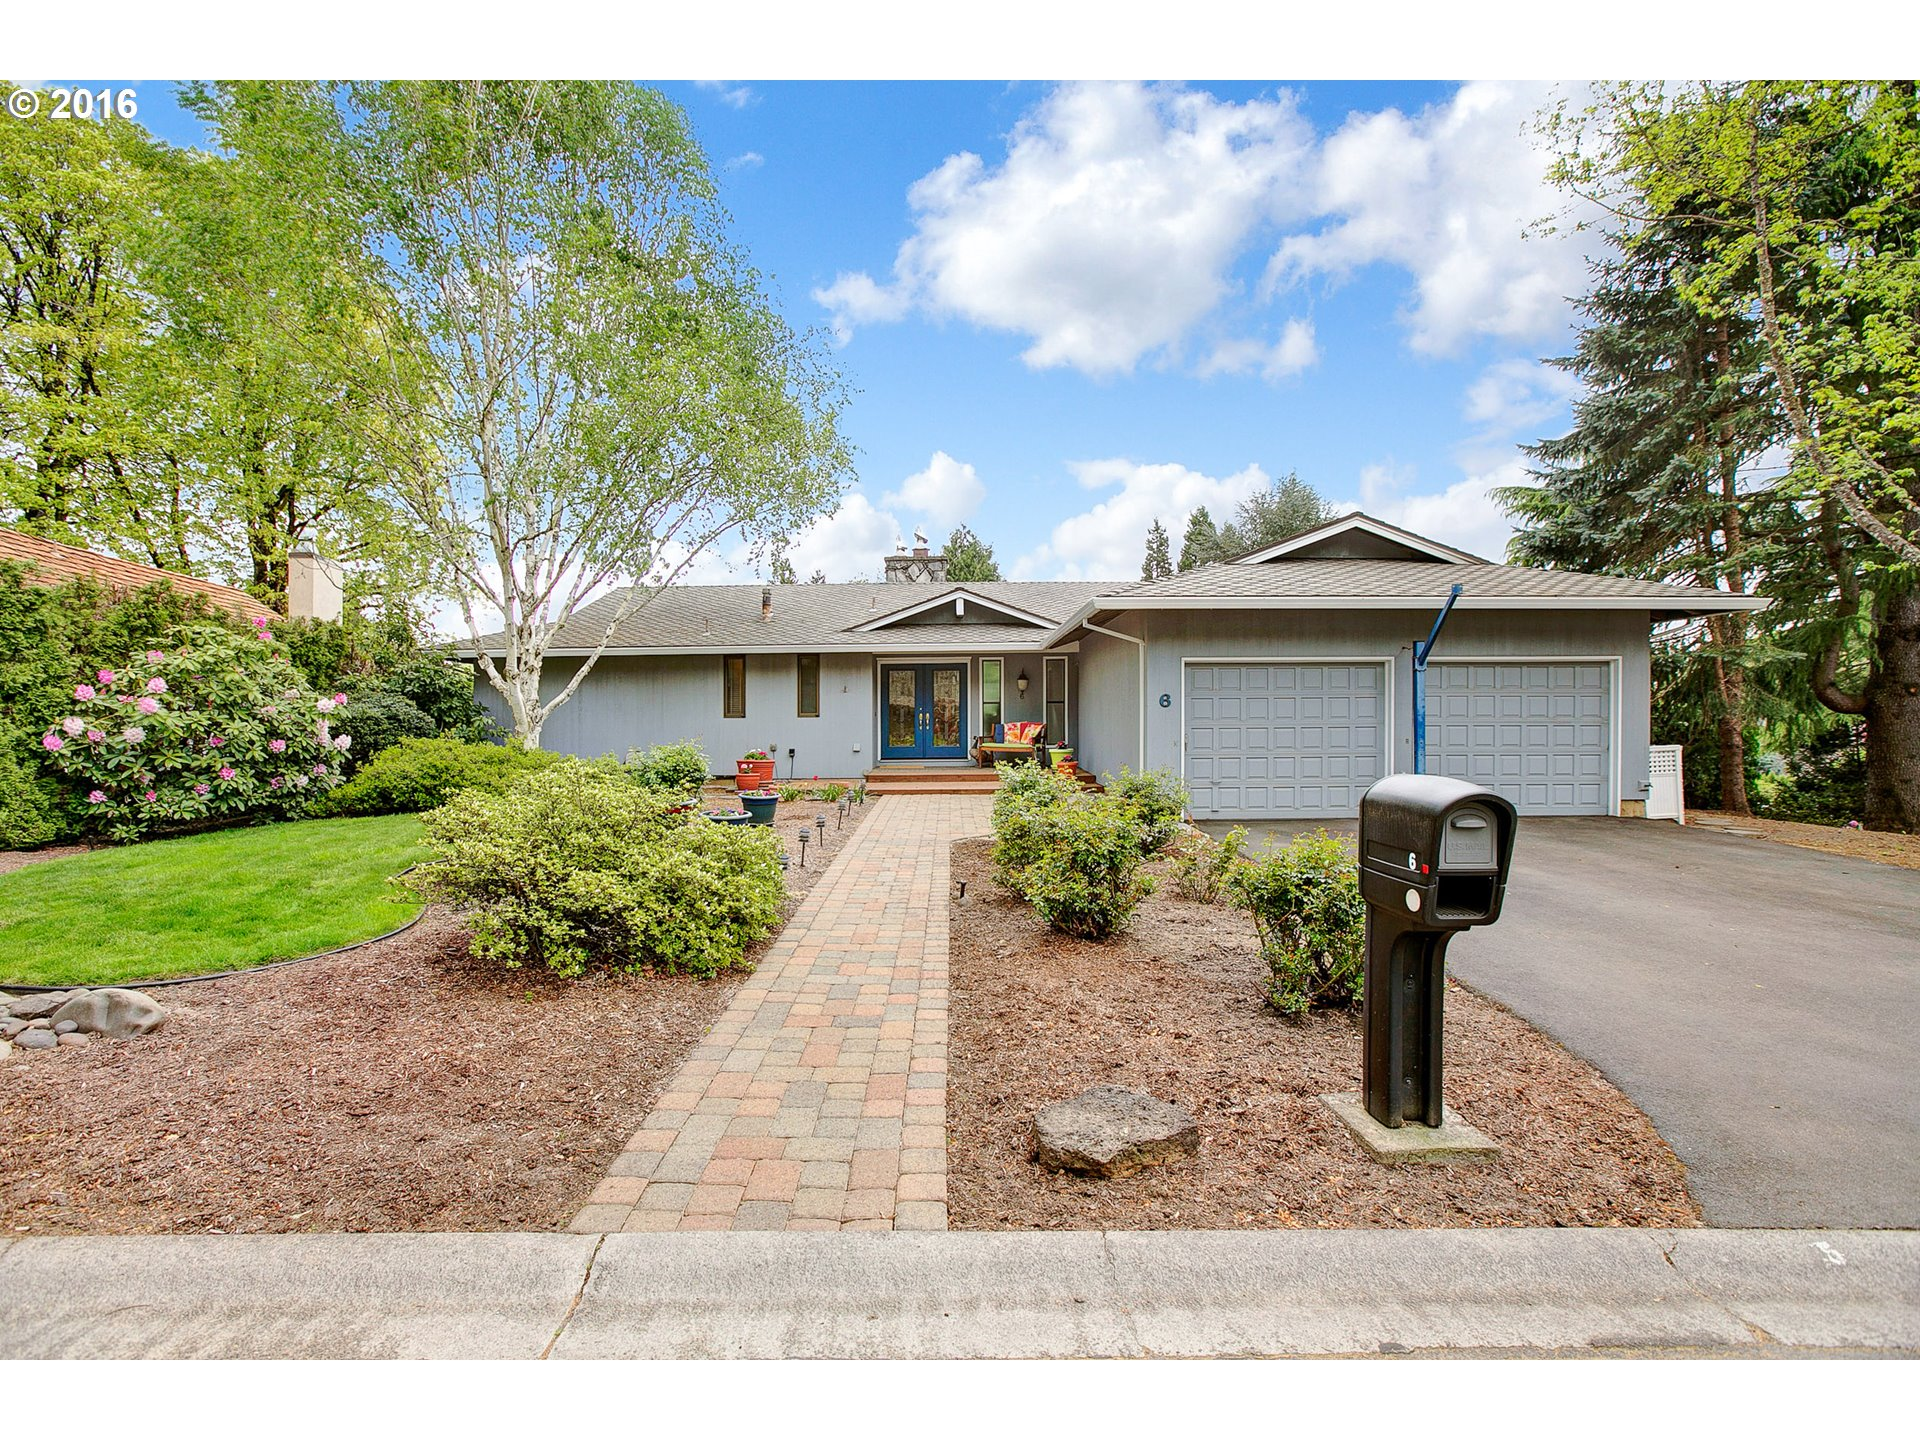 6 TANGLEWOOD DR, Lake Oswego OR 97035